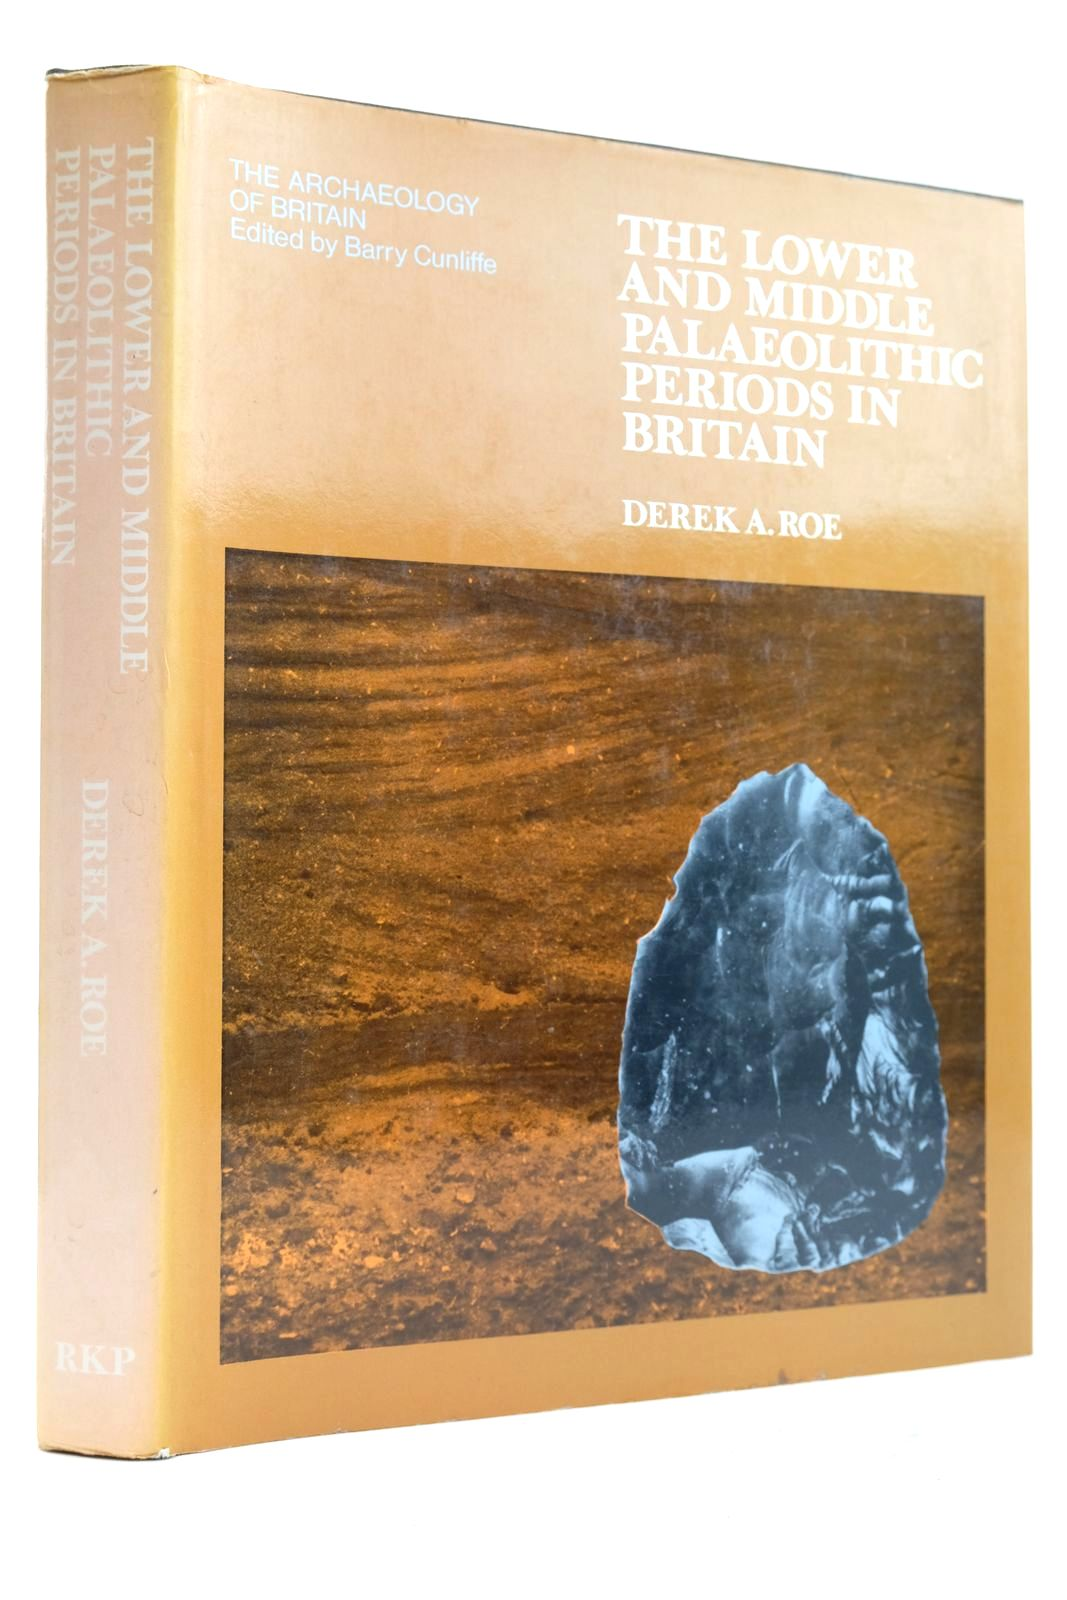 Photo of THE LOWER AND MIDDLE PALAEOLITHIC PERIODS IN BRITAIN- Stock Number: 2132743